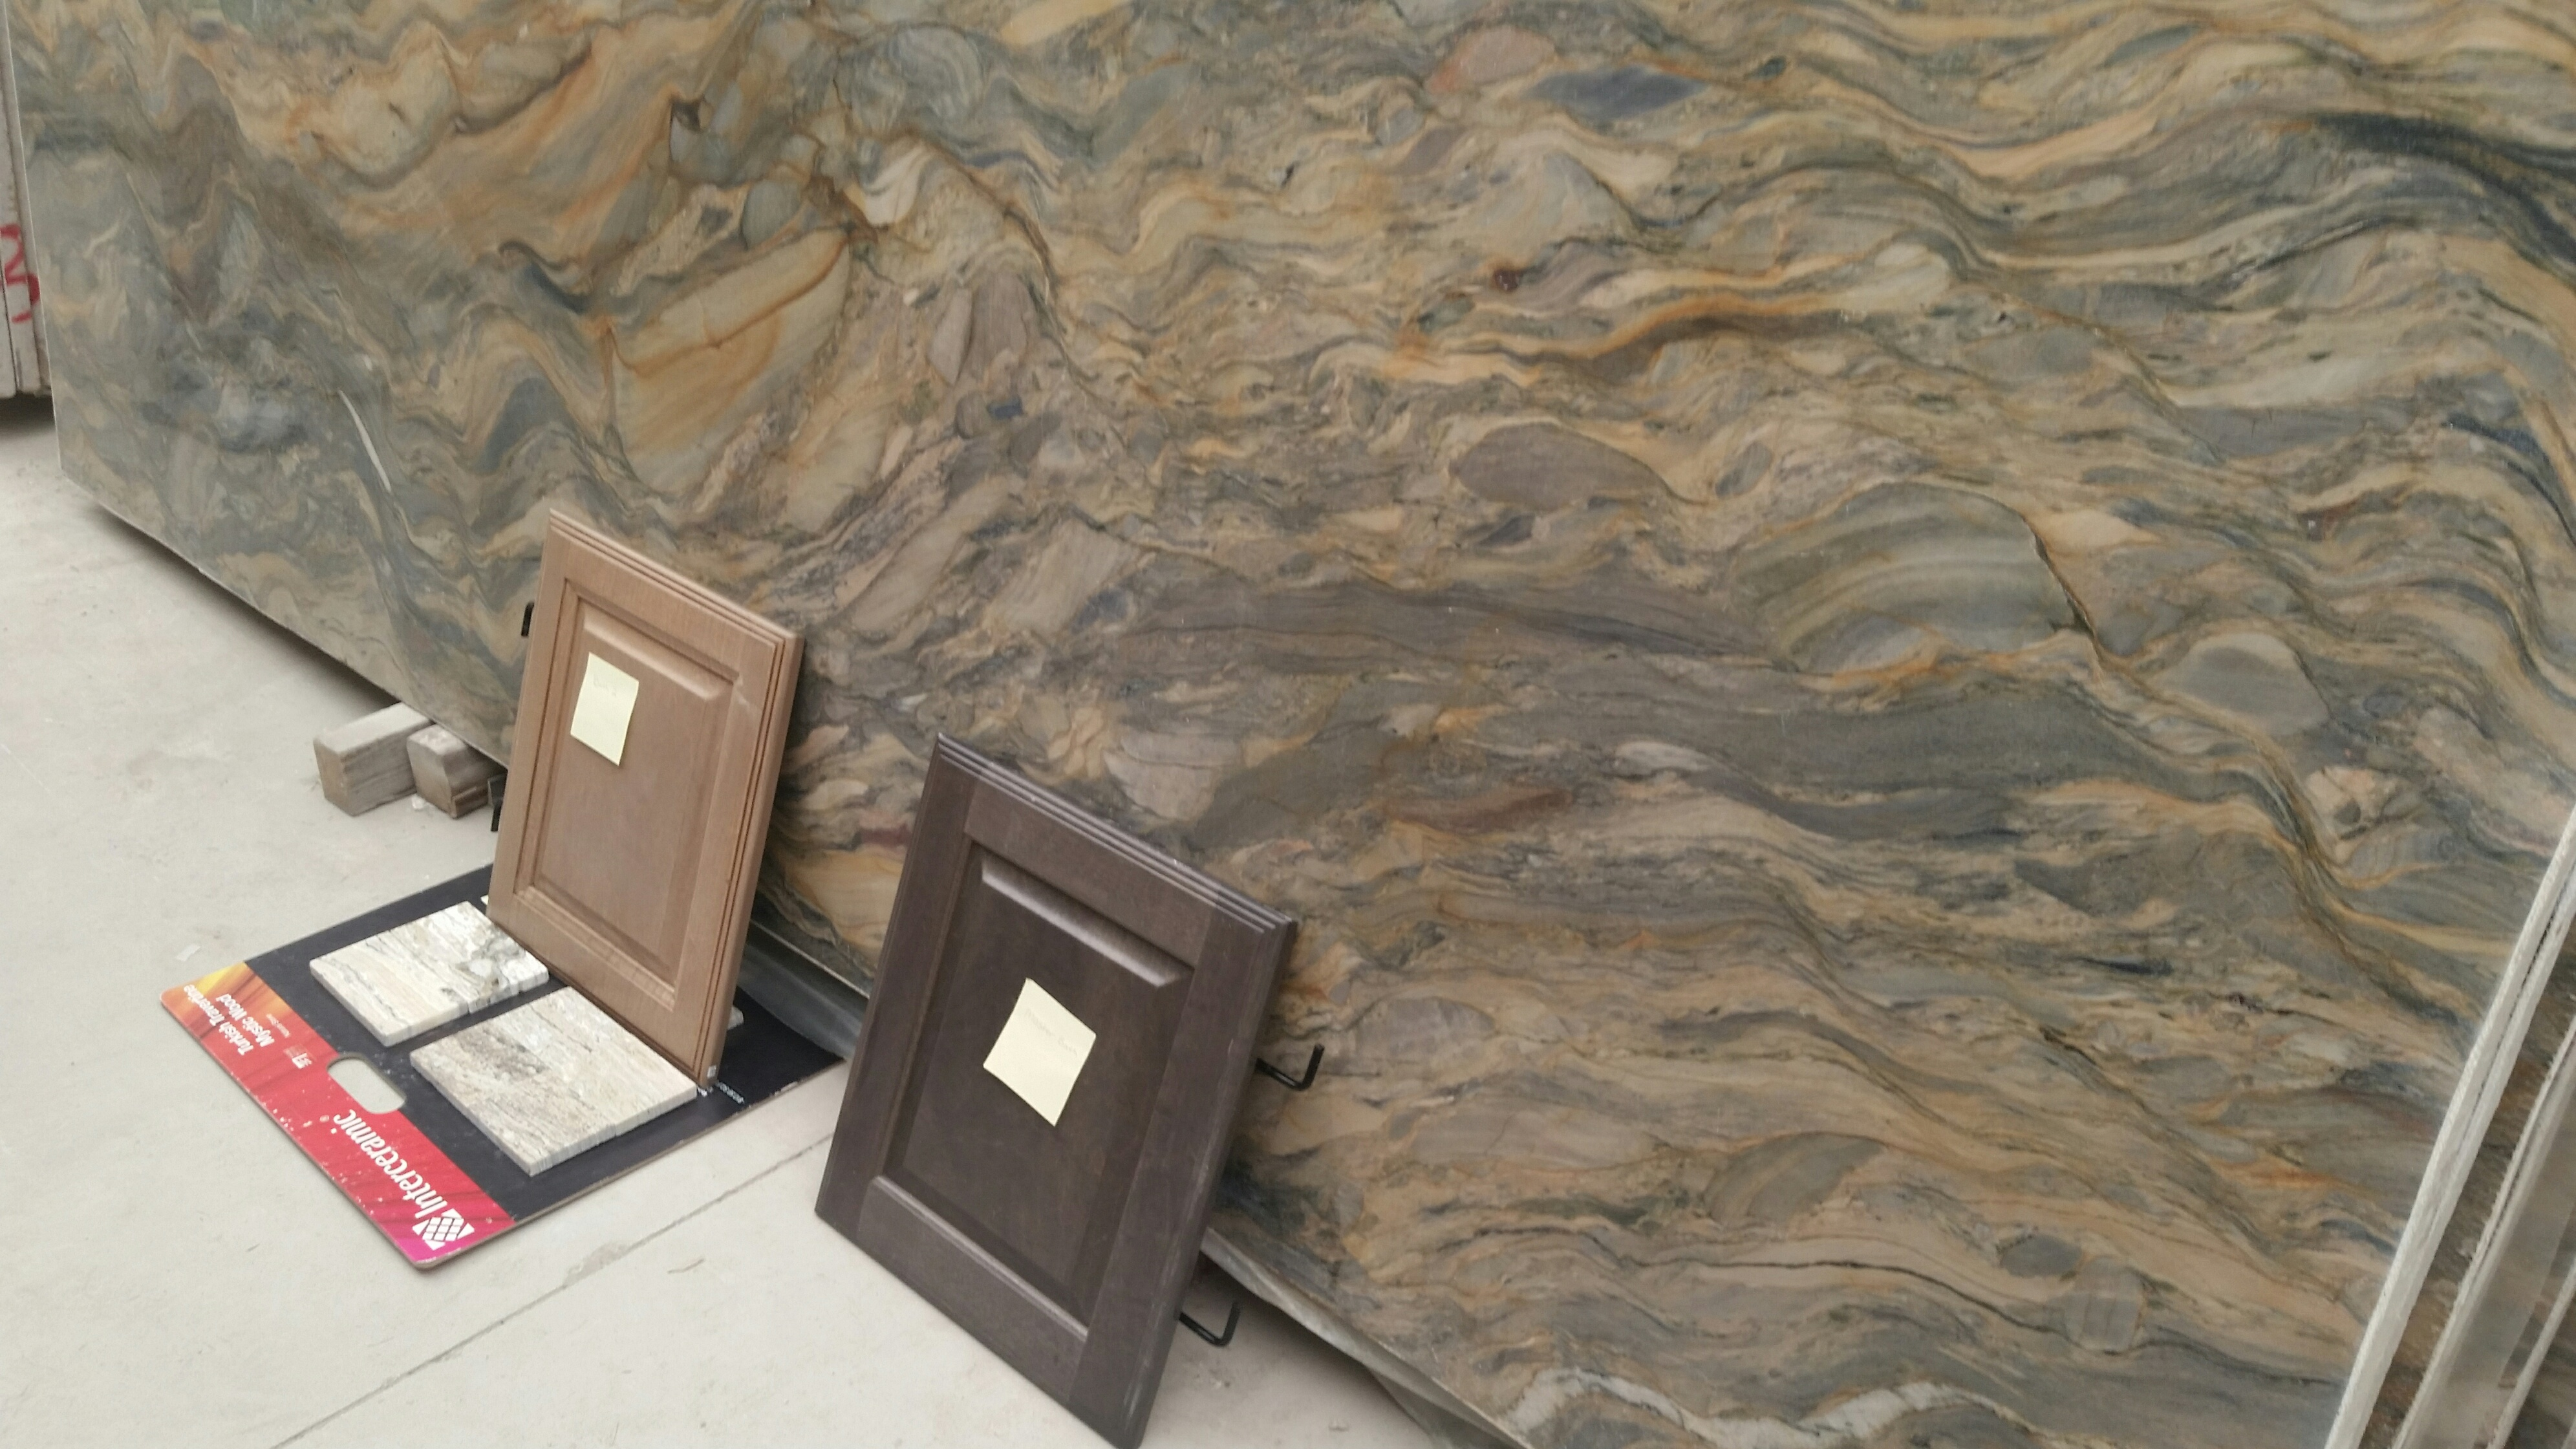 Master Bath and Bath 2 selections with Quartzite Fusion. They did not want this slab because it had